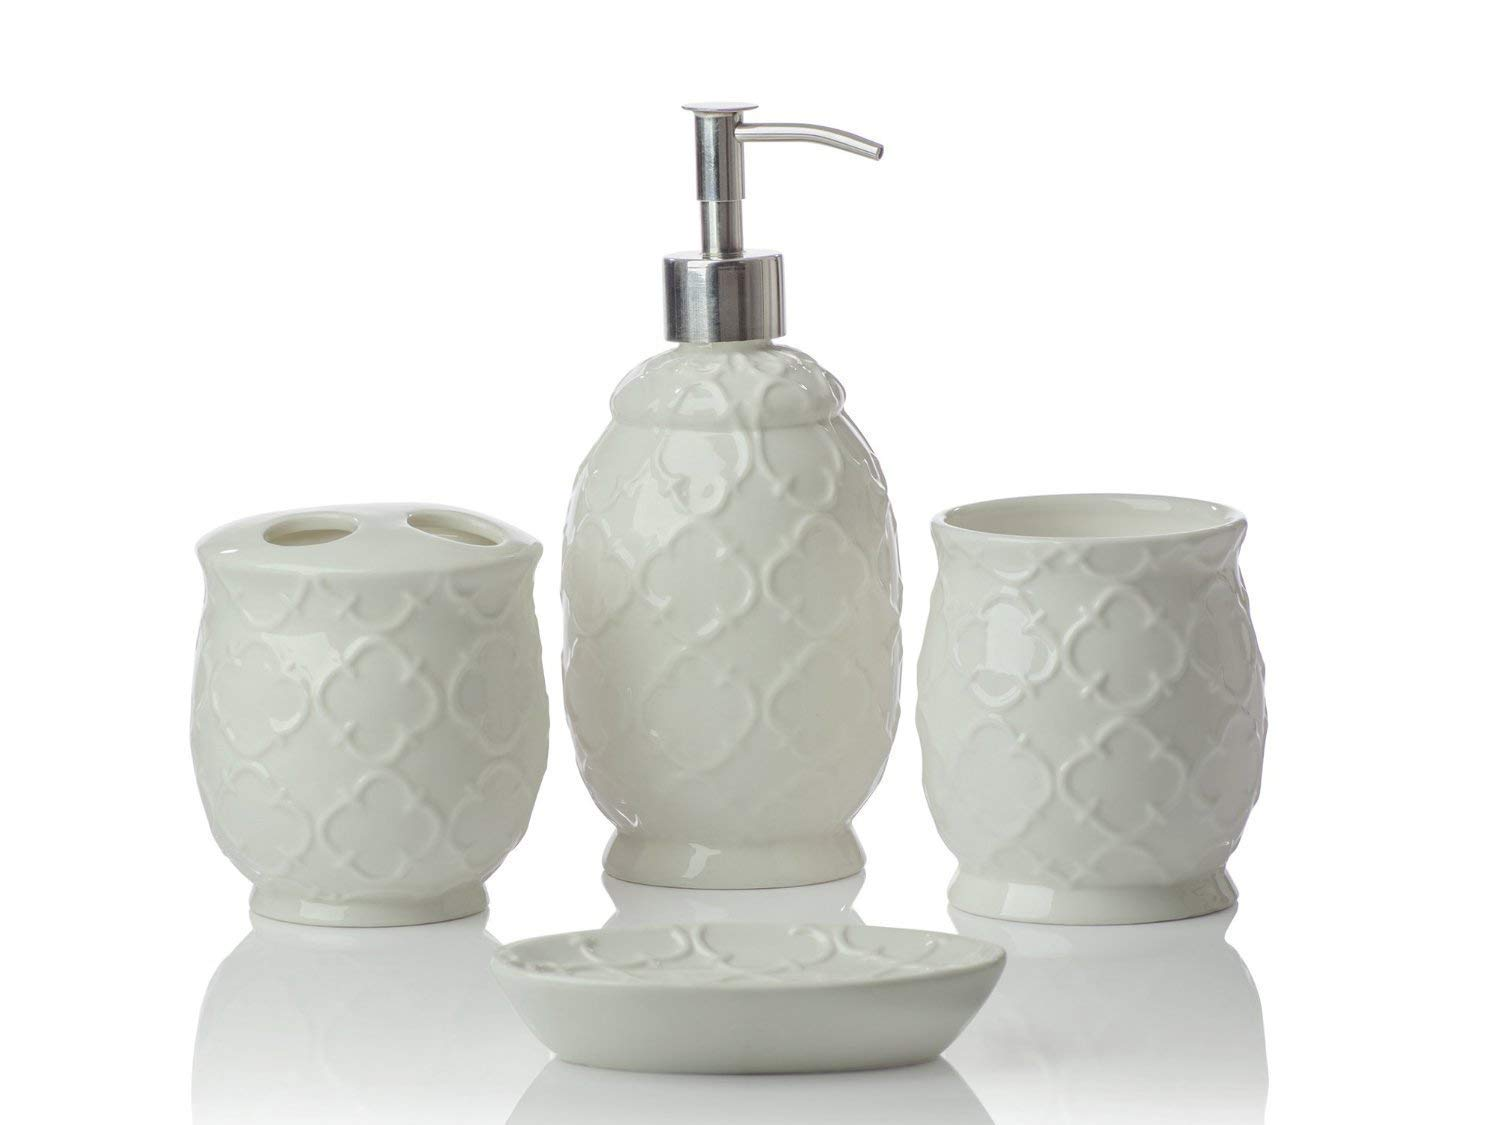 Designer 4-Piece Ceramic Bath Accessory Set | Includes Liquid Soap or Lotion Dispenser w/ Toothbrush Holder, Tumbler, Soap Dish | Moroccan Trellis Comfify AC-0817-04